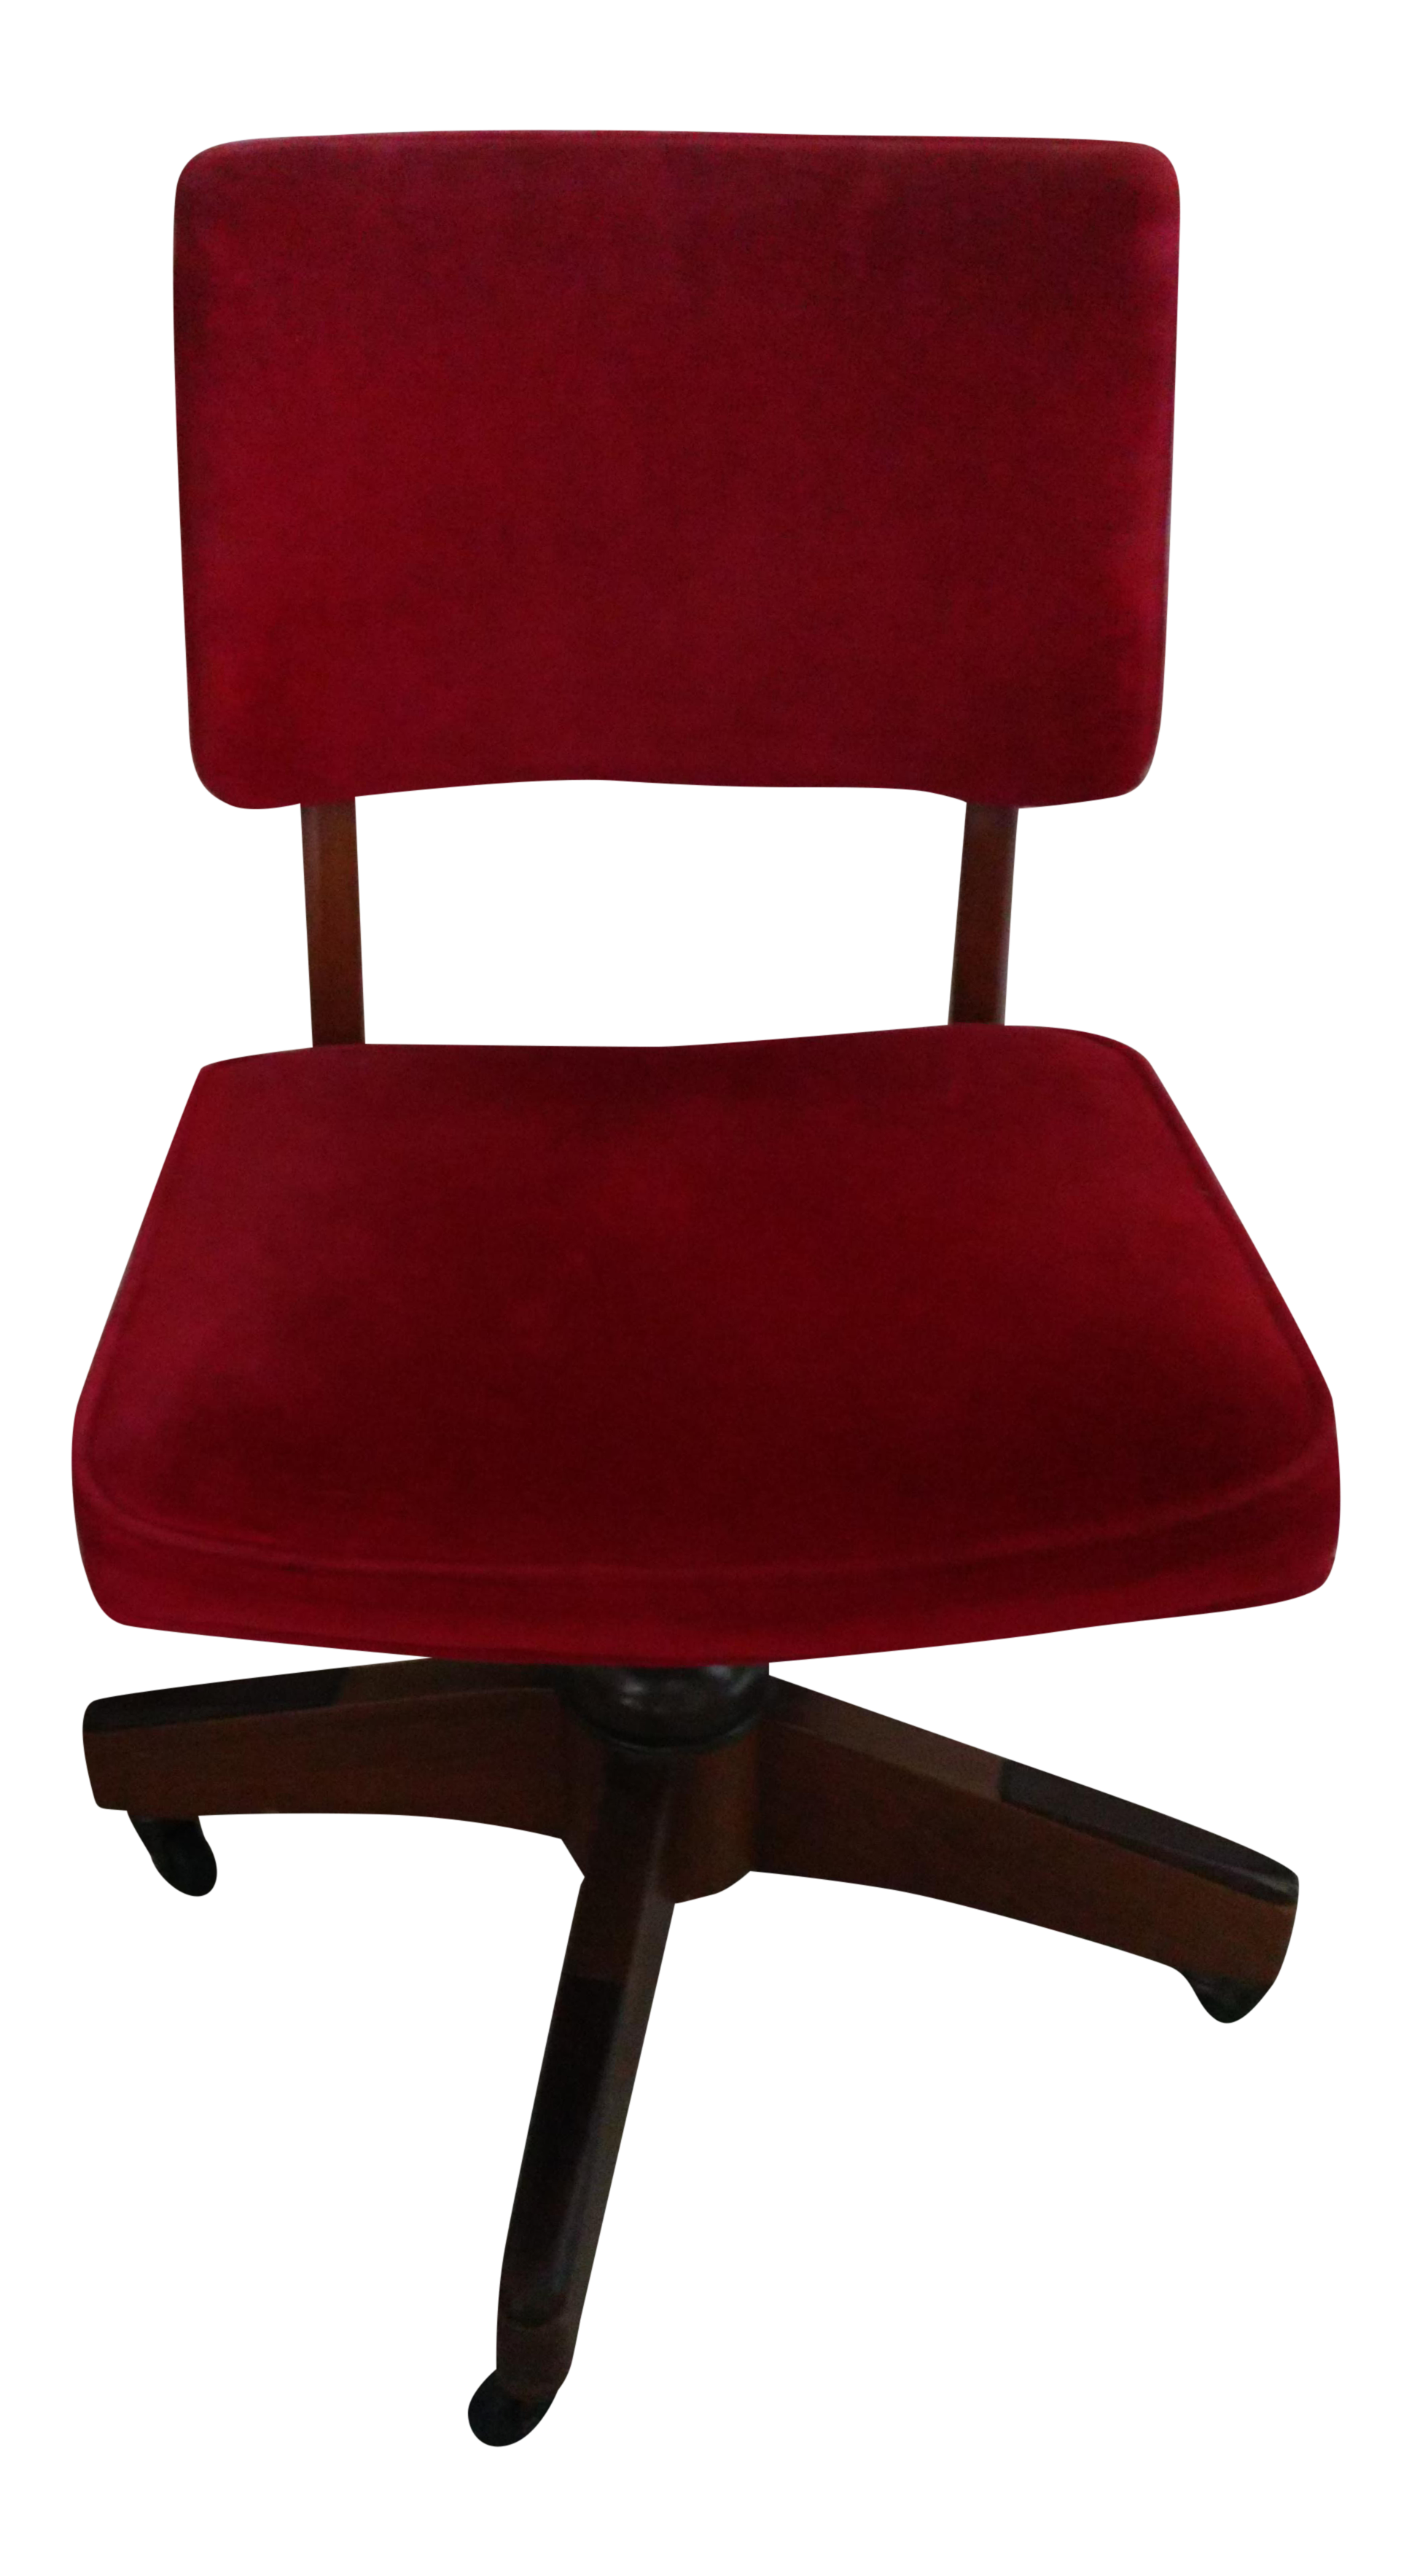 Antique Red Micro Fiber Upholstered Rolling Swivel Desk Chair